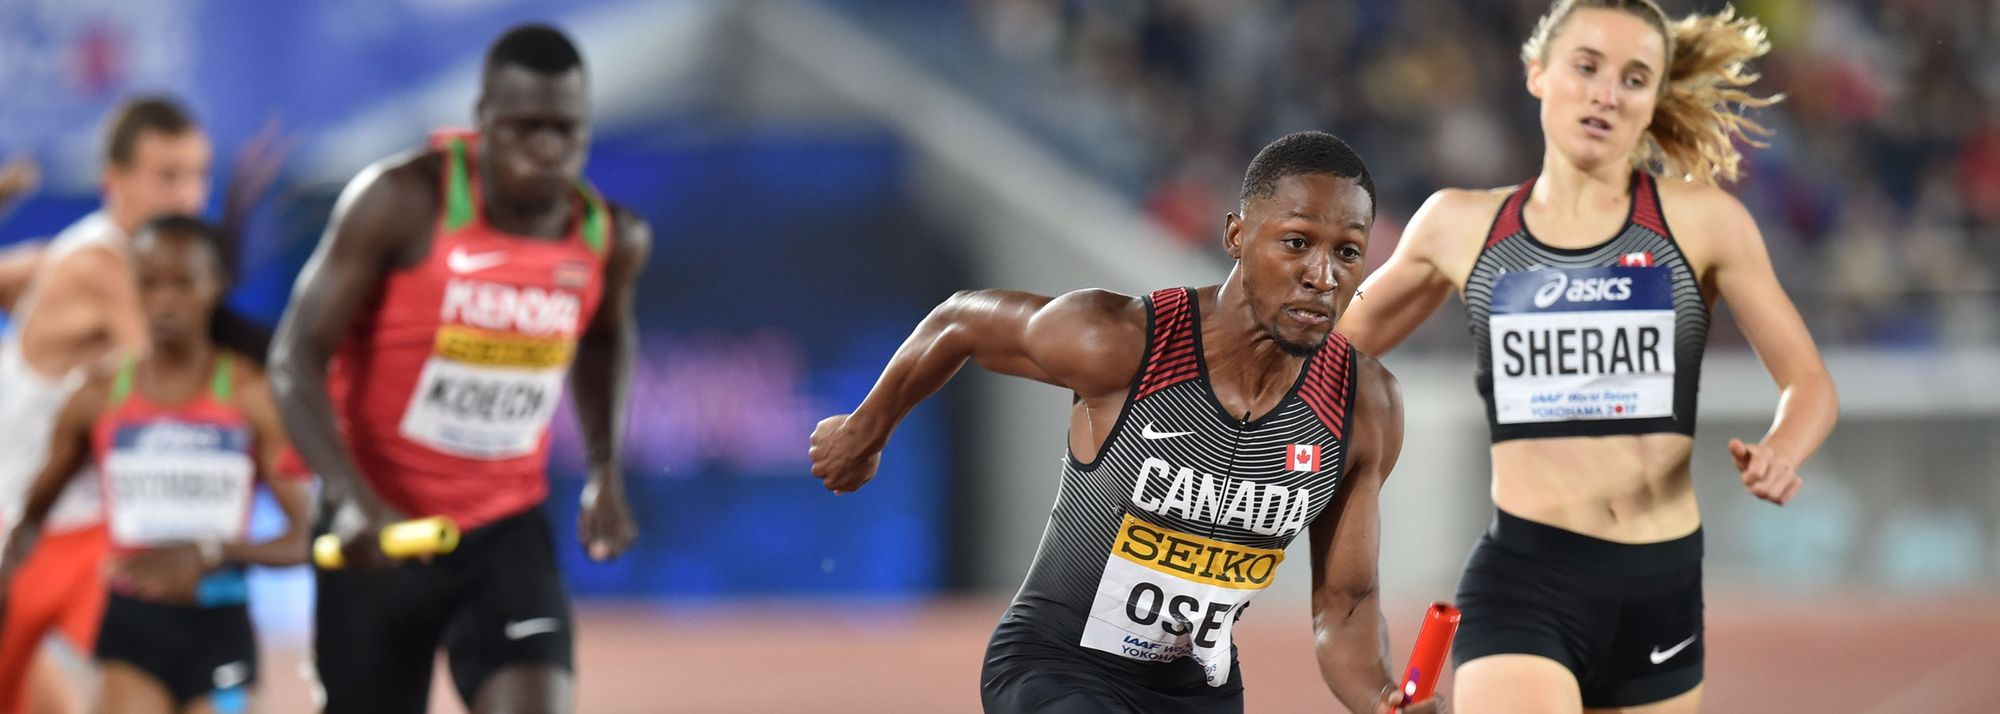 Athletics Canada has selected 24 athletes to compete at the World Athletics Relays Silesia 21 on 1-2 May.